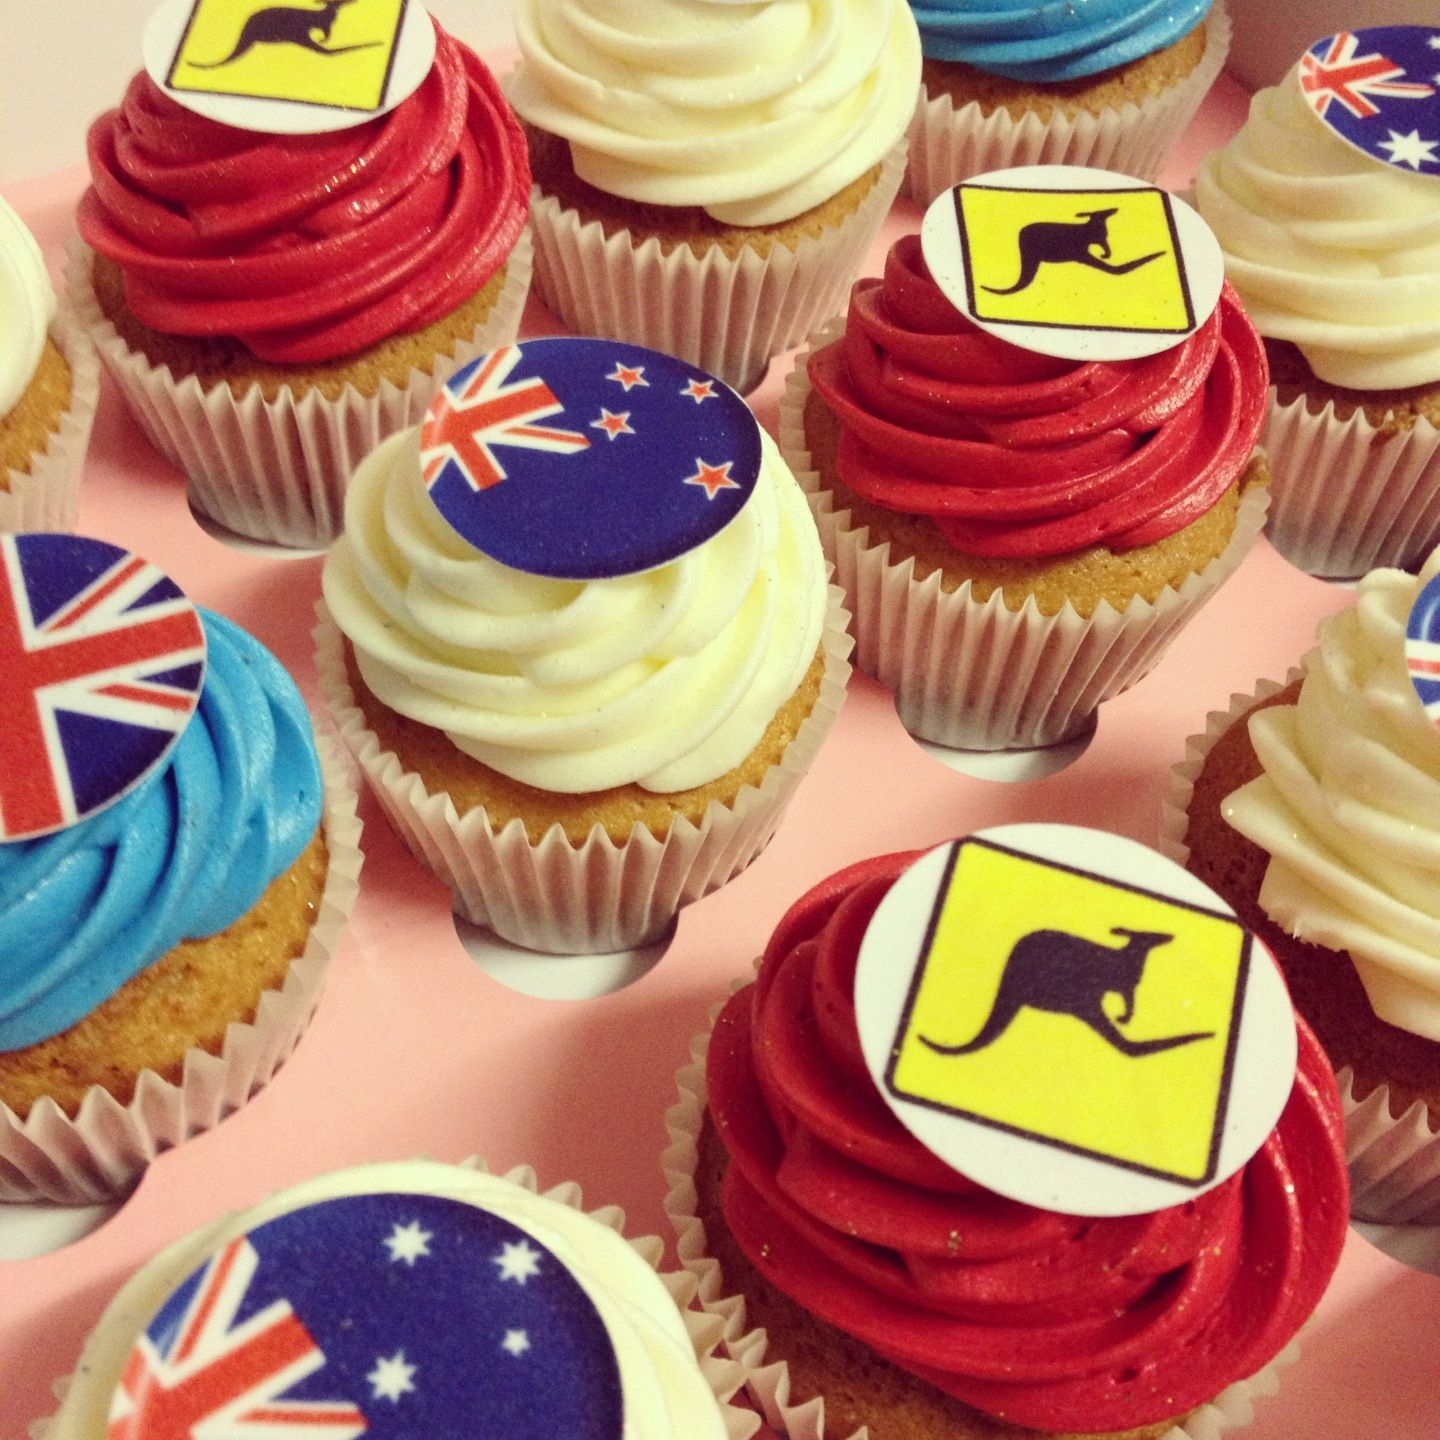 Home' Cupcakes! Australia, New Zealand and